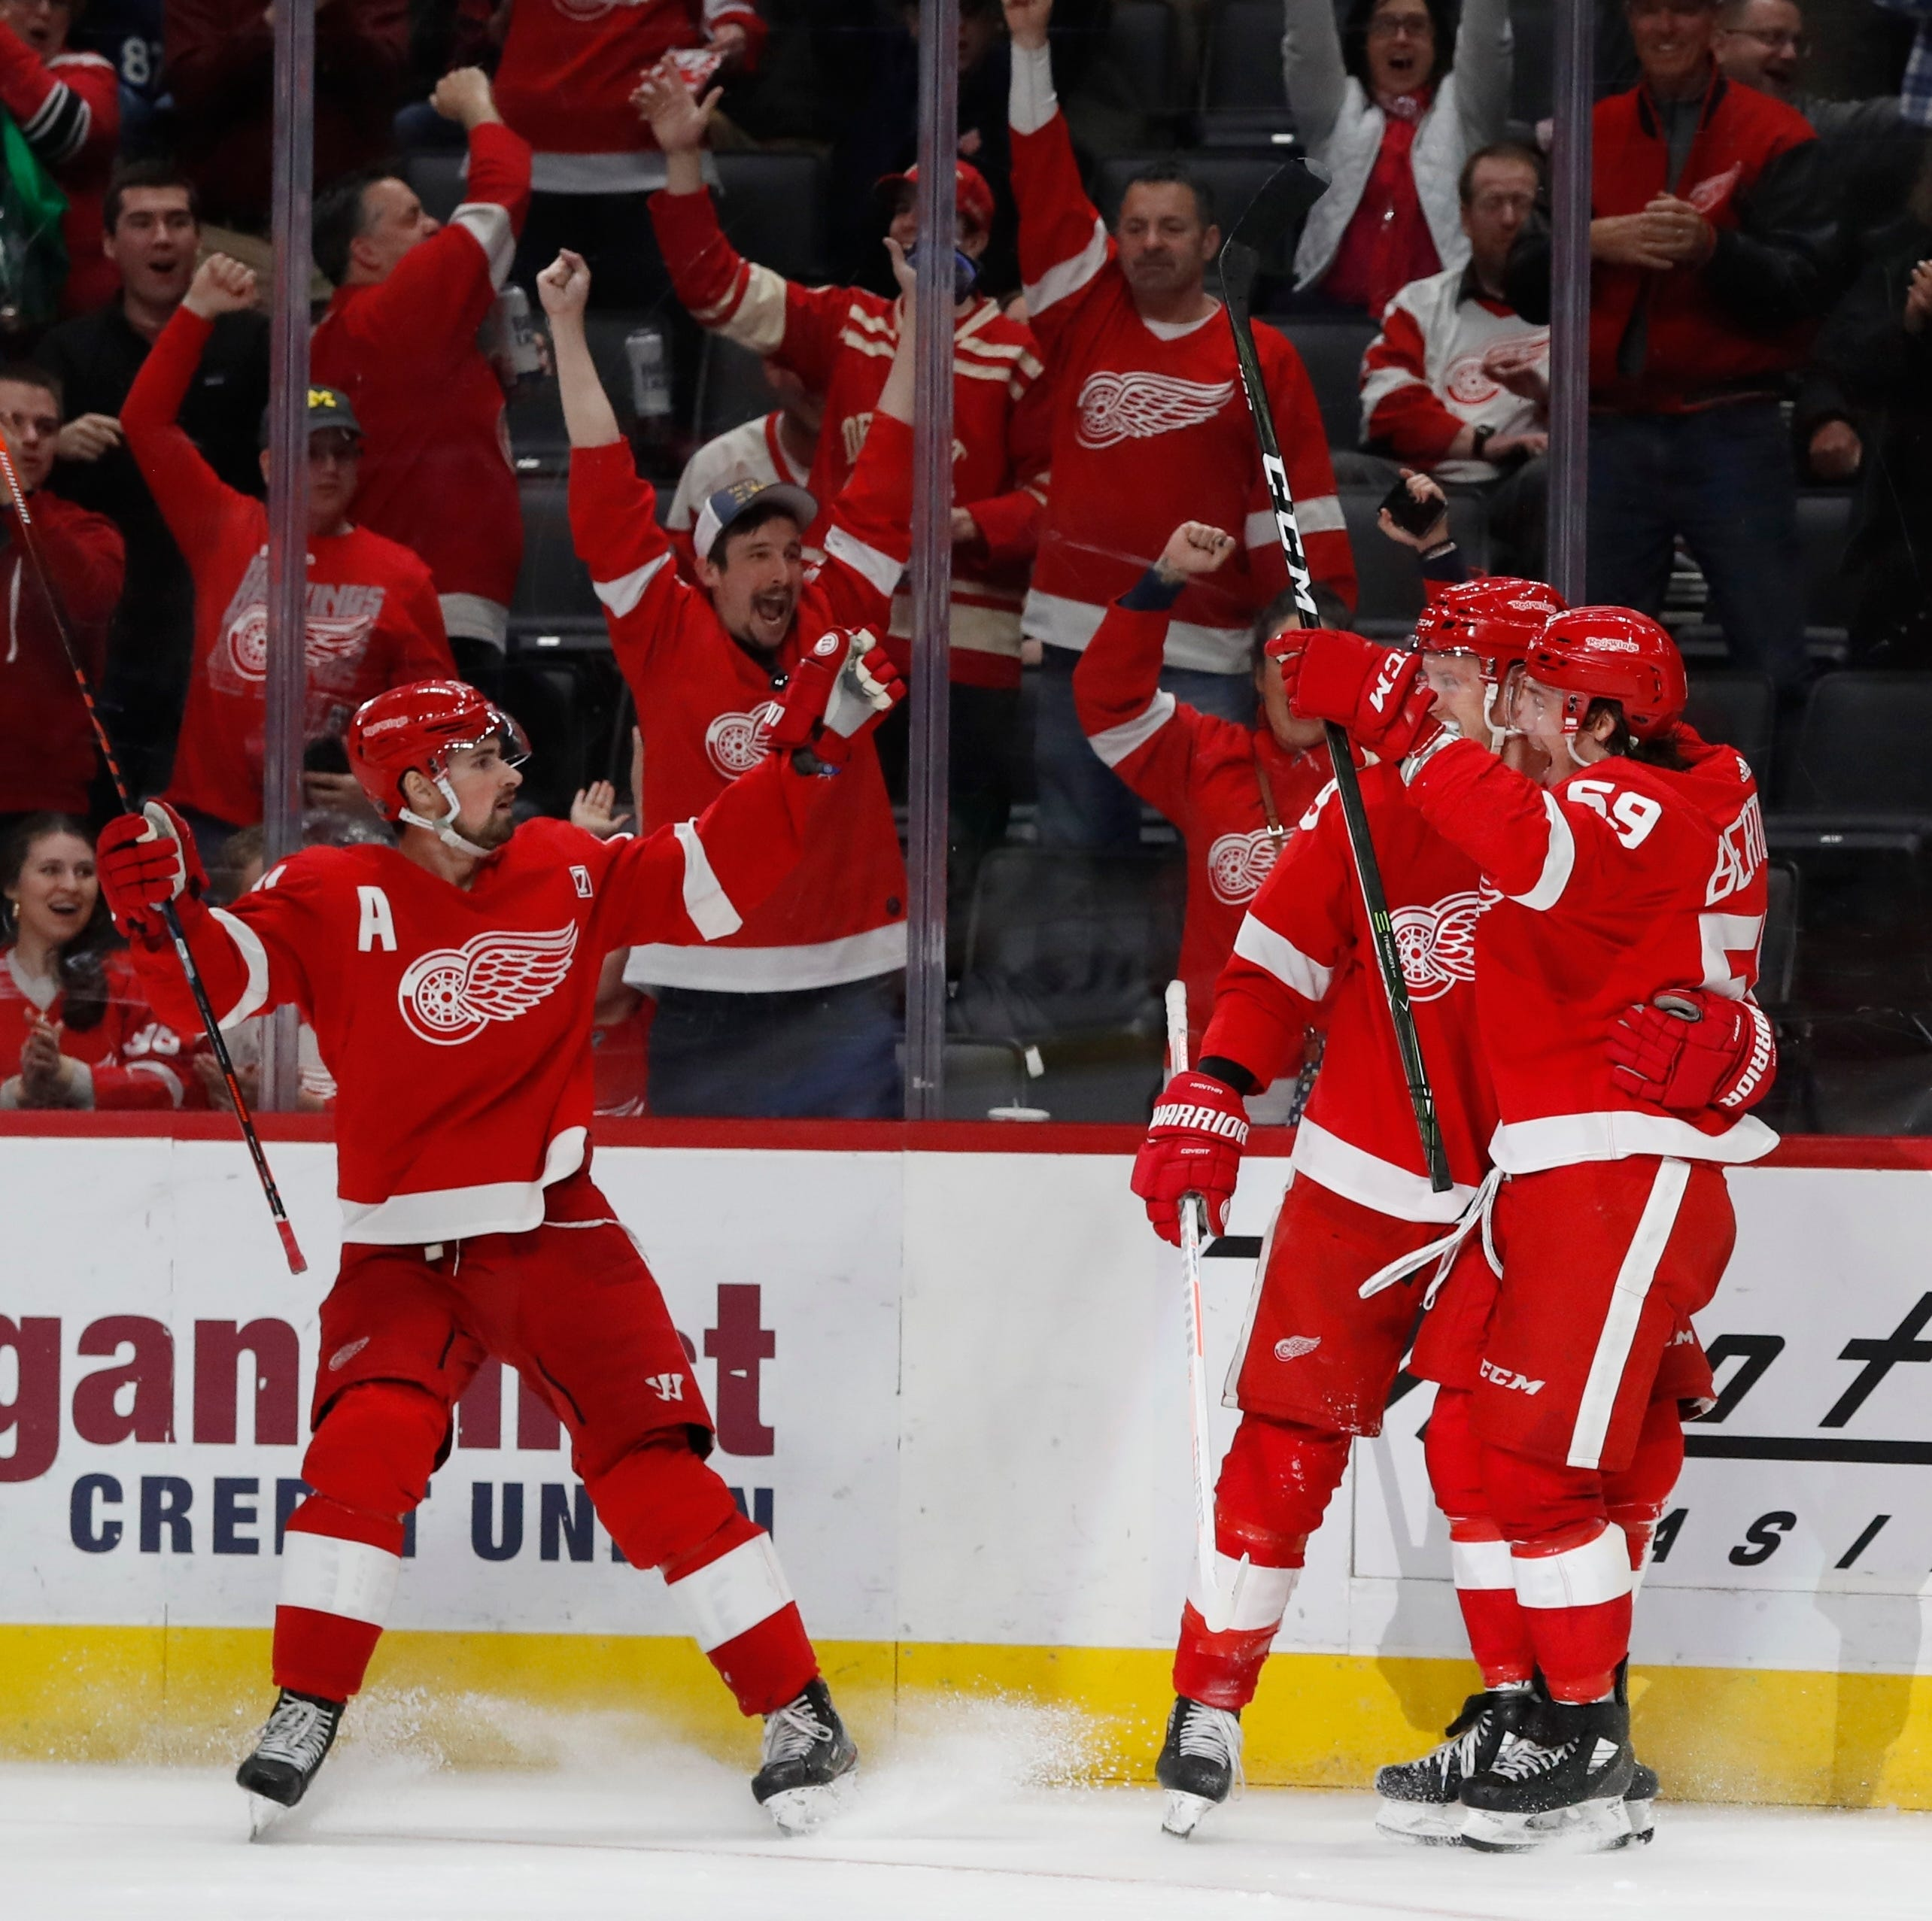 Bertuzzi's milestone highlights Red Wings' sixth straight victory, 4-1 drubbing of Penguins